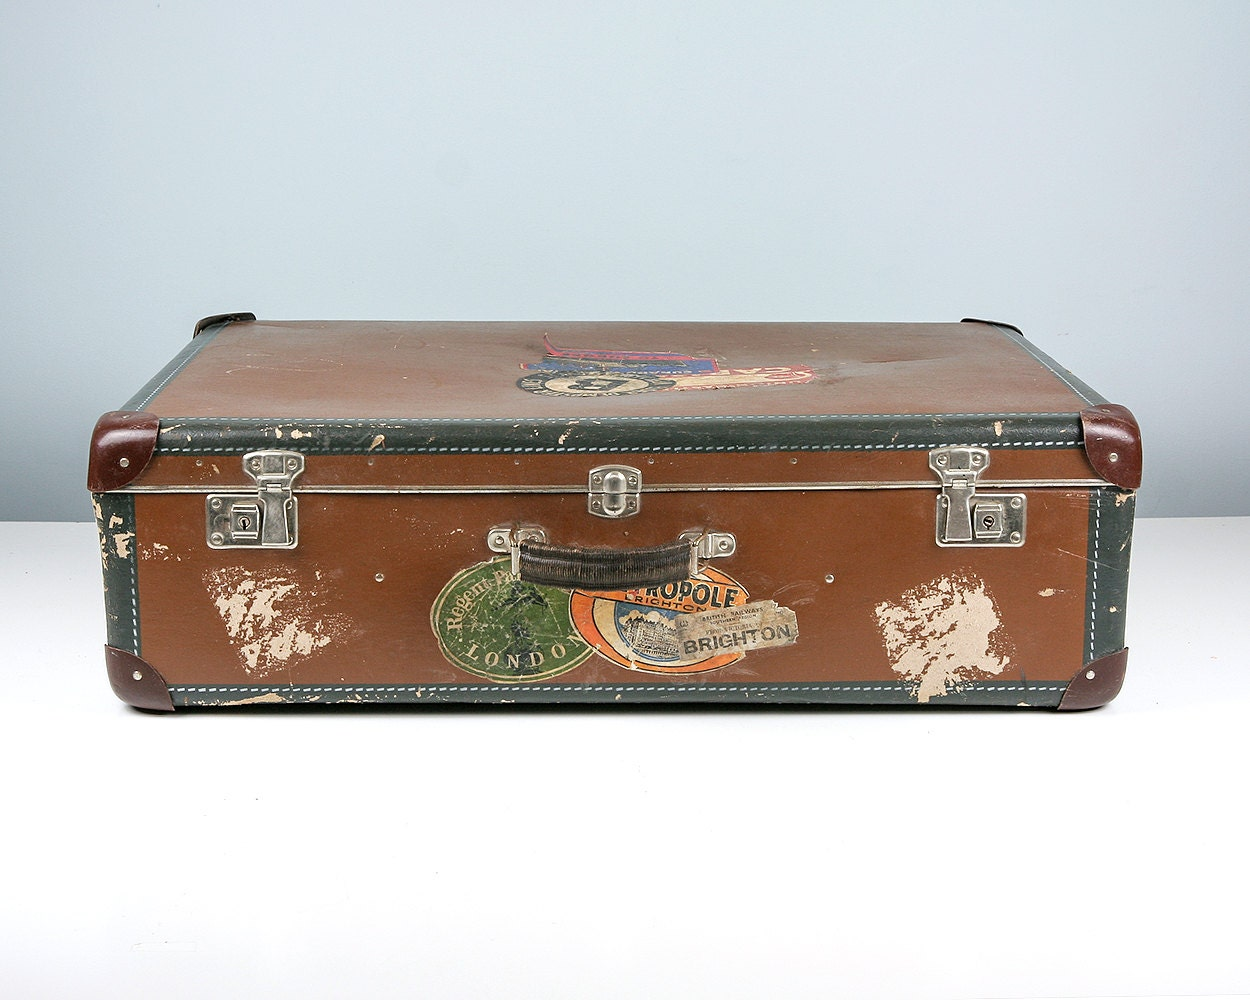 Vintage Suitcase Trunk With Vintage Travel Stickers Vintage